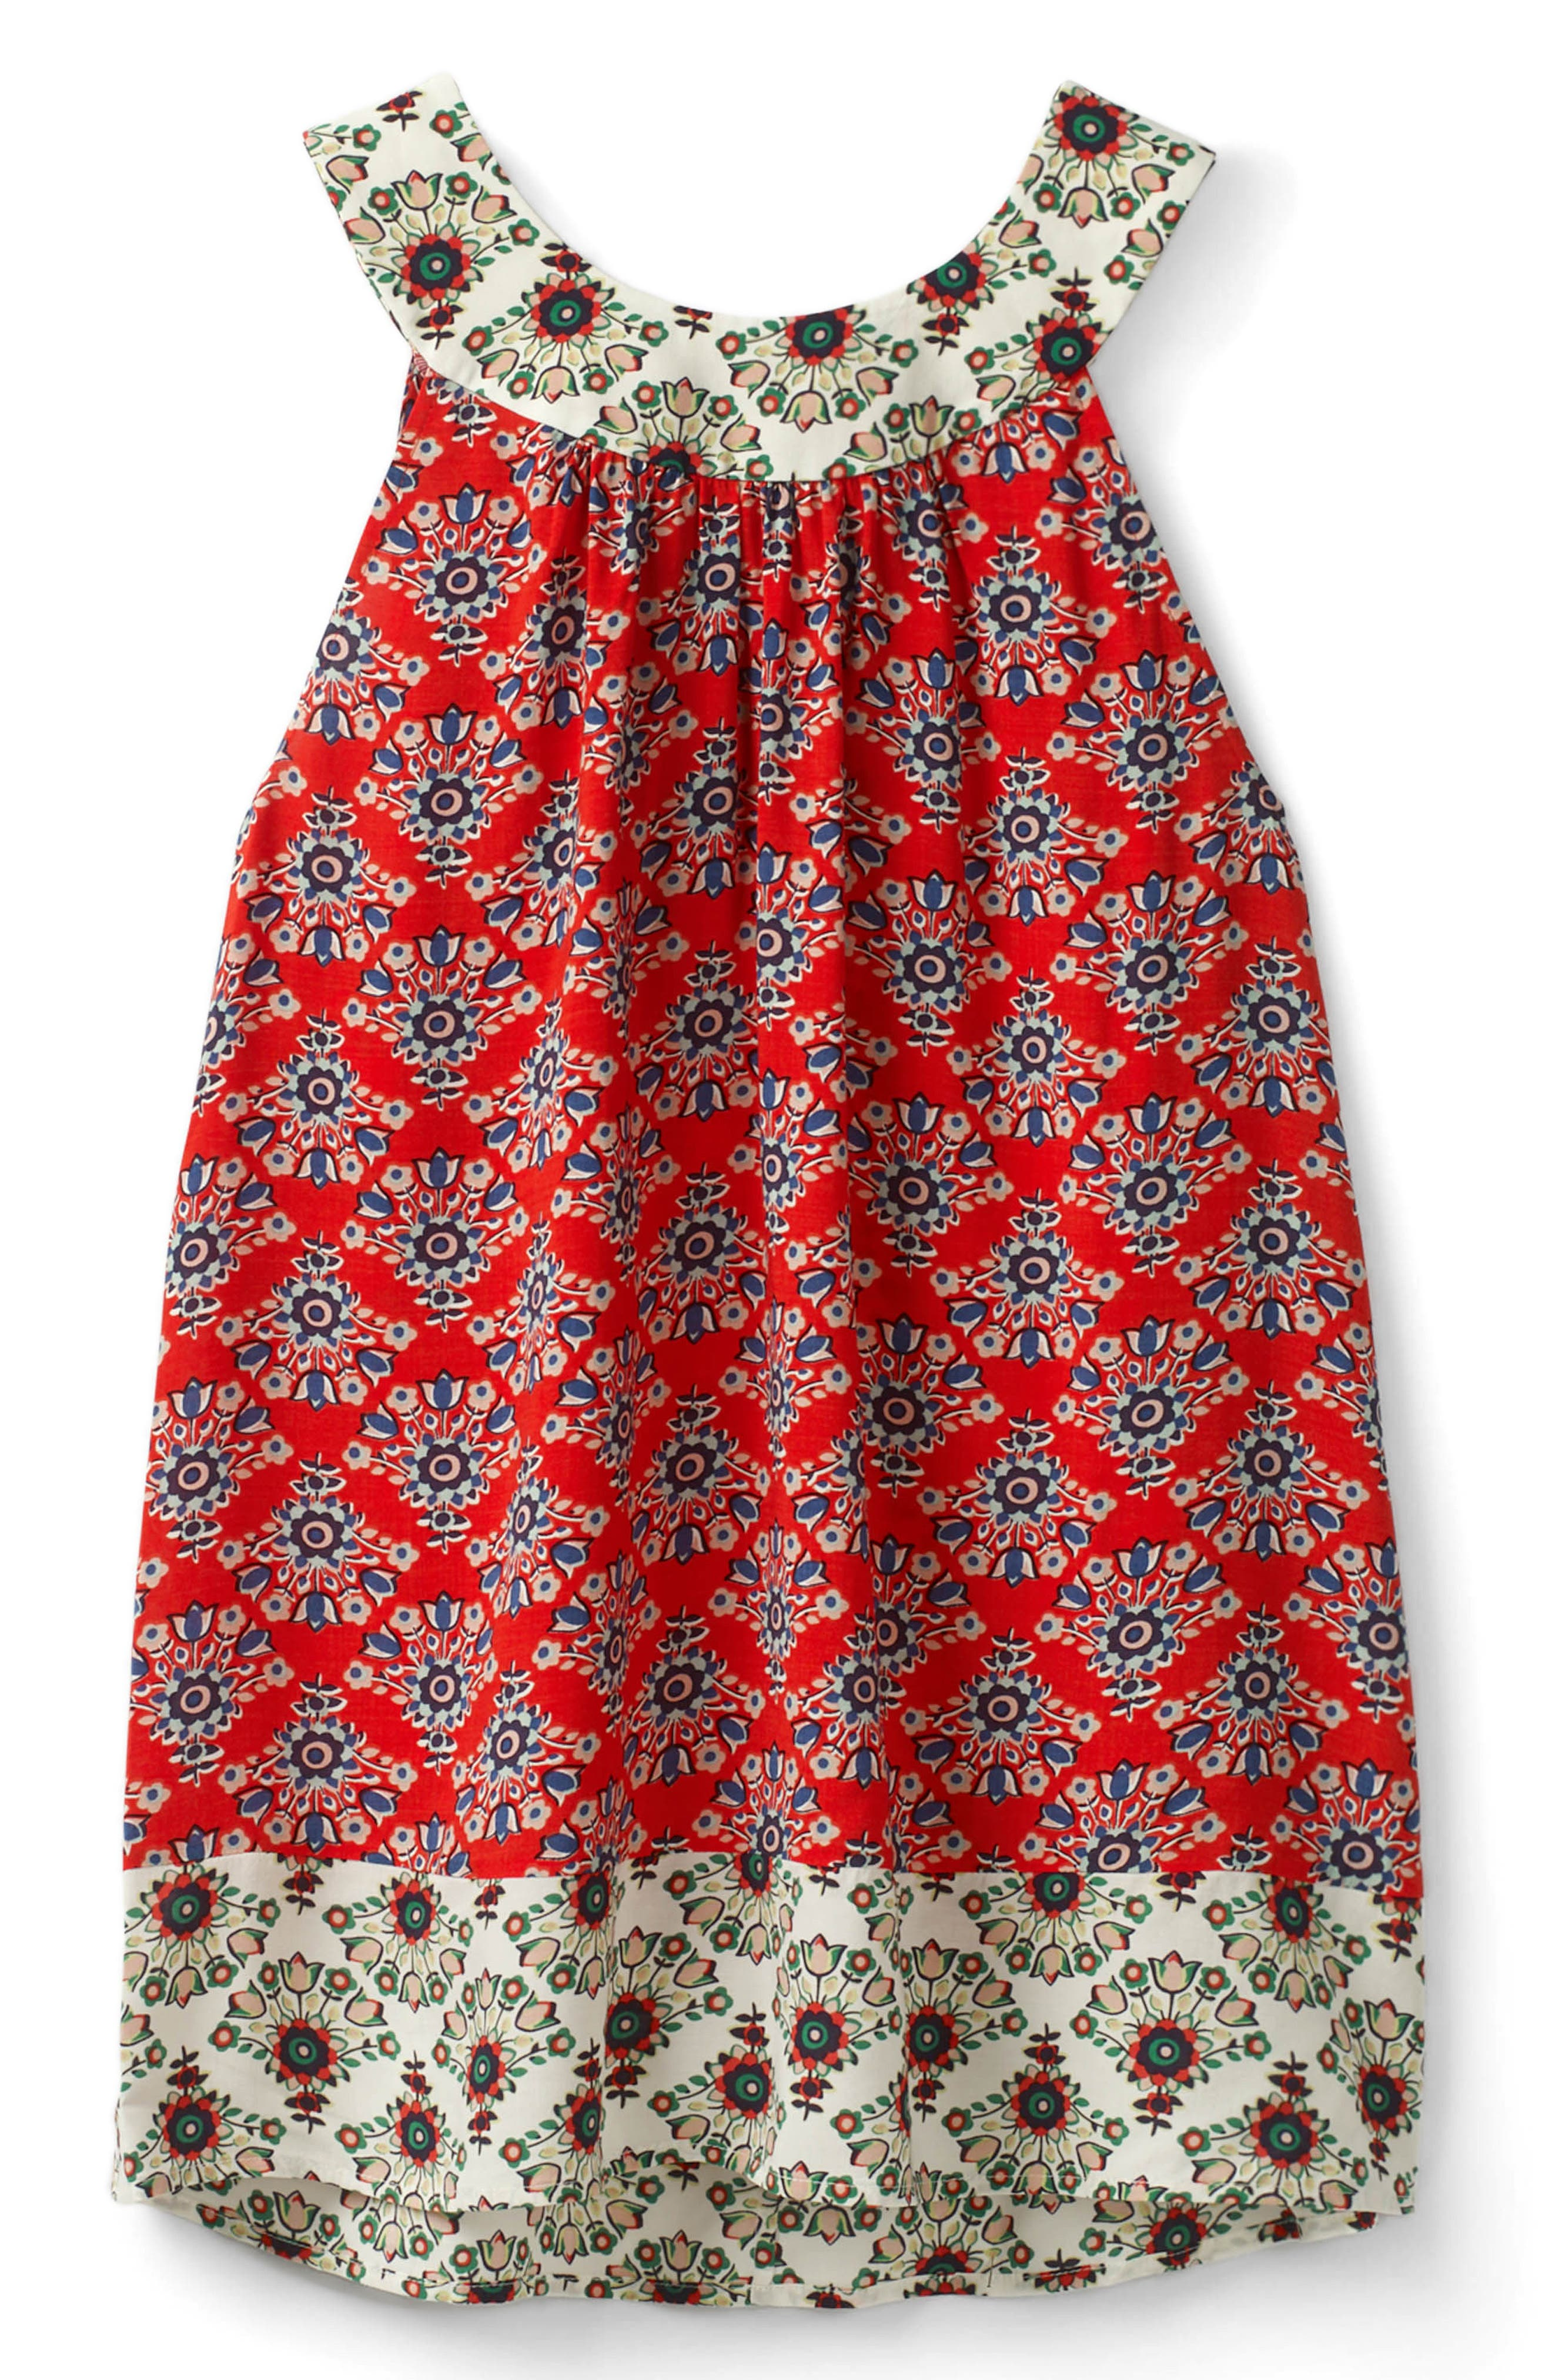 Print Mix Swing Top,                             Alternate thumbnail 7, color,                             Red Pop Floral Bouq